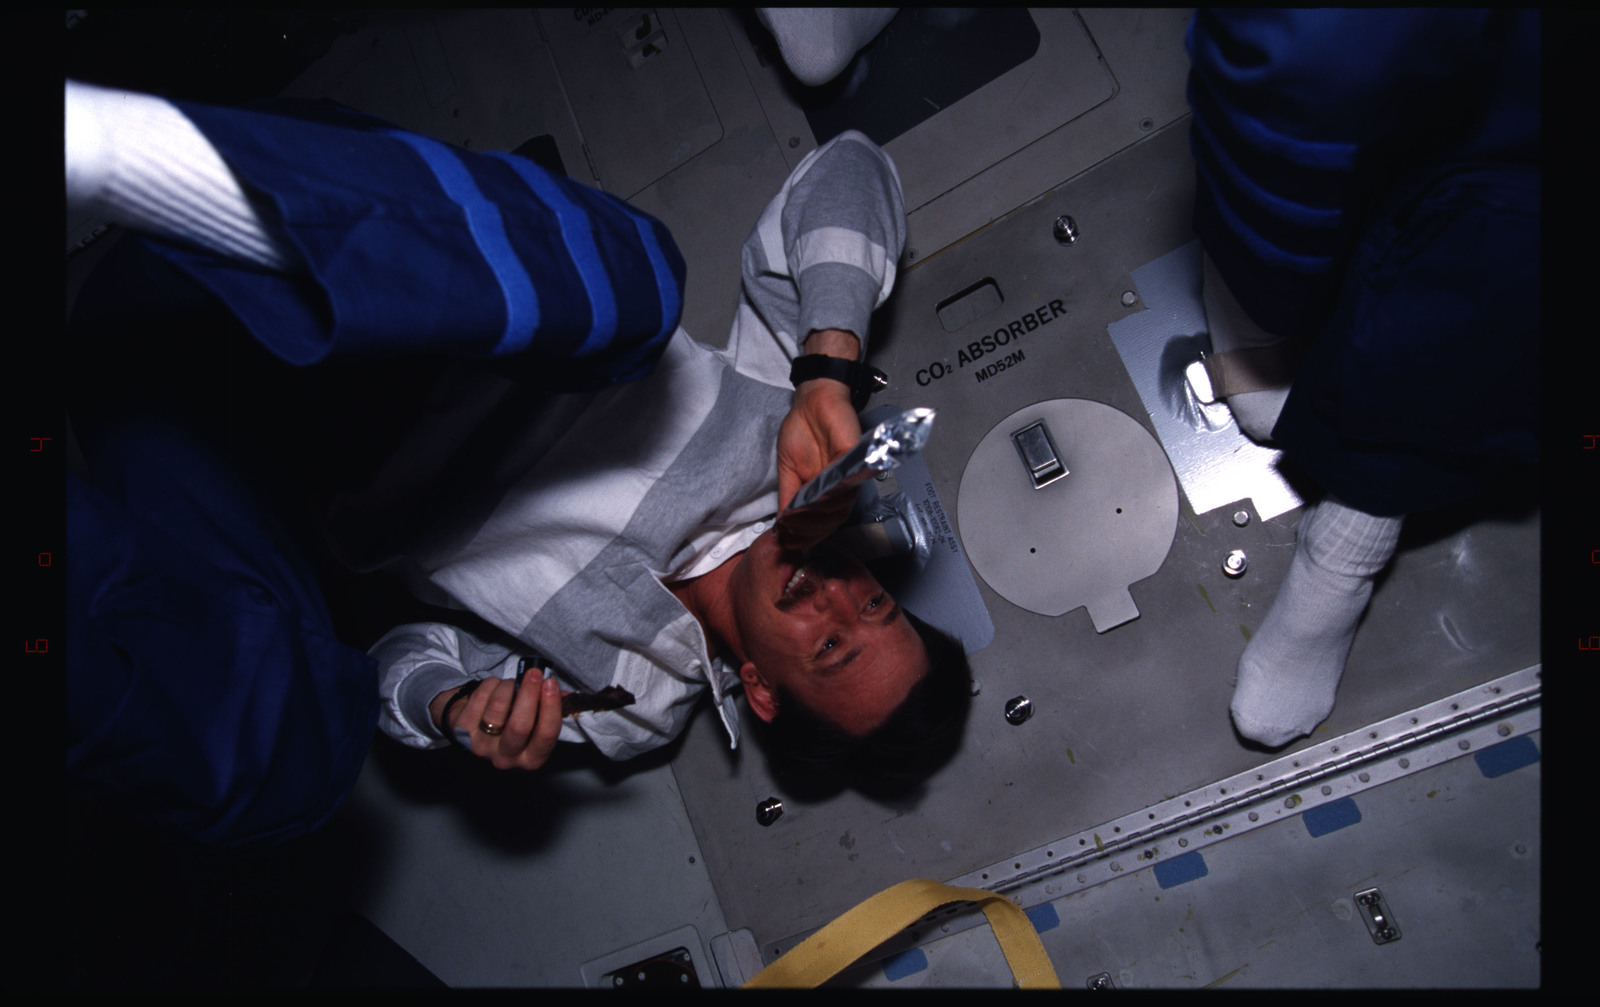 STS082-381-006 - STS-082 - Crewmember activities in the shuttle middeck on day off